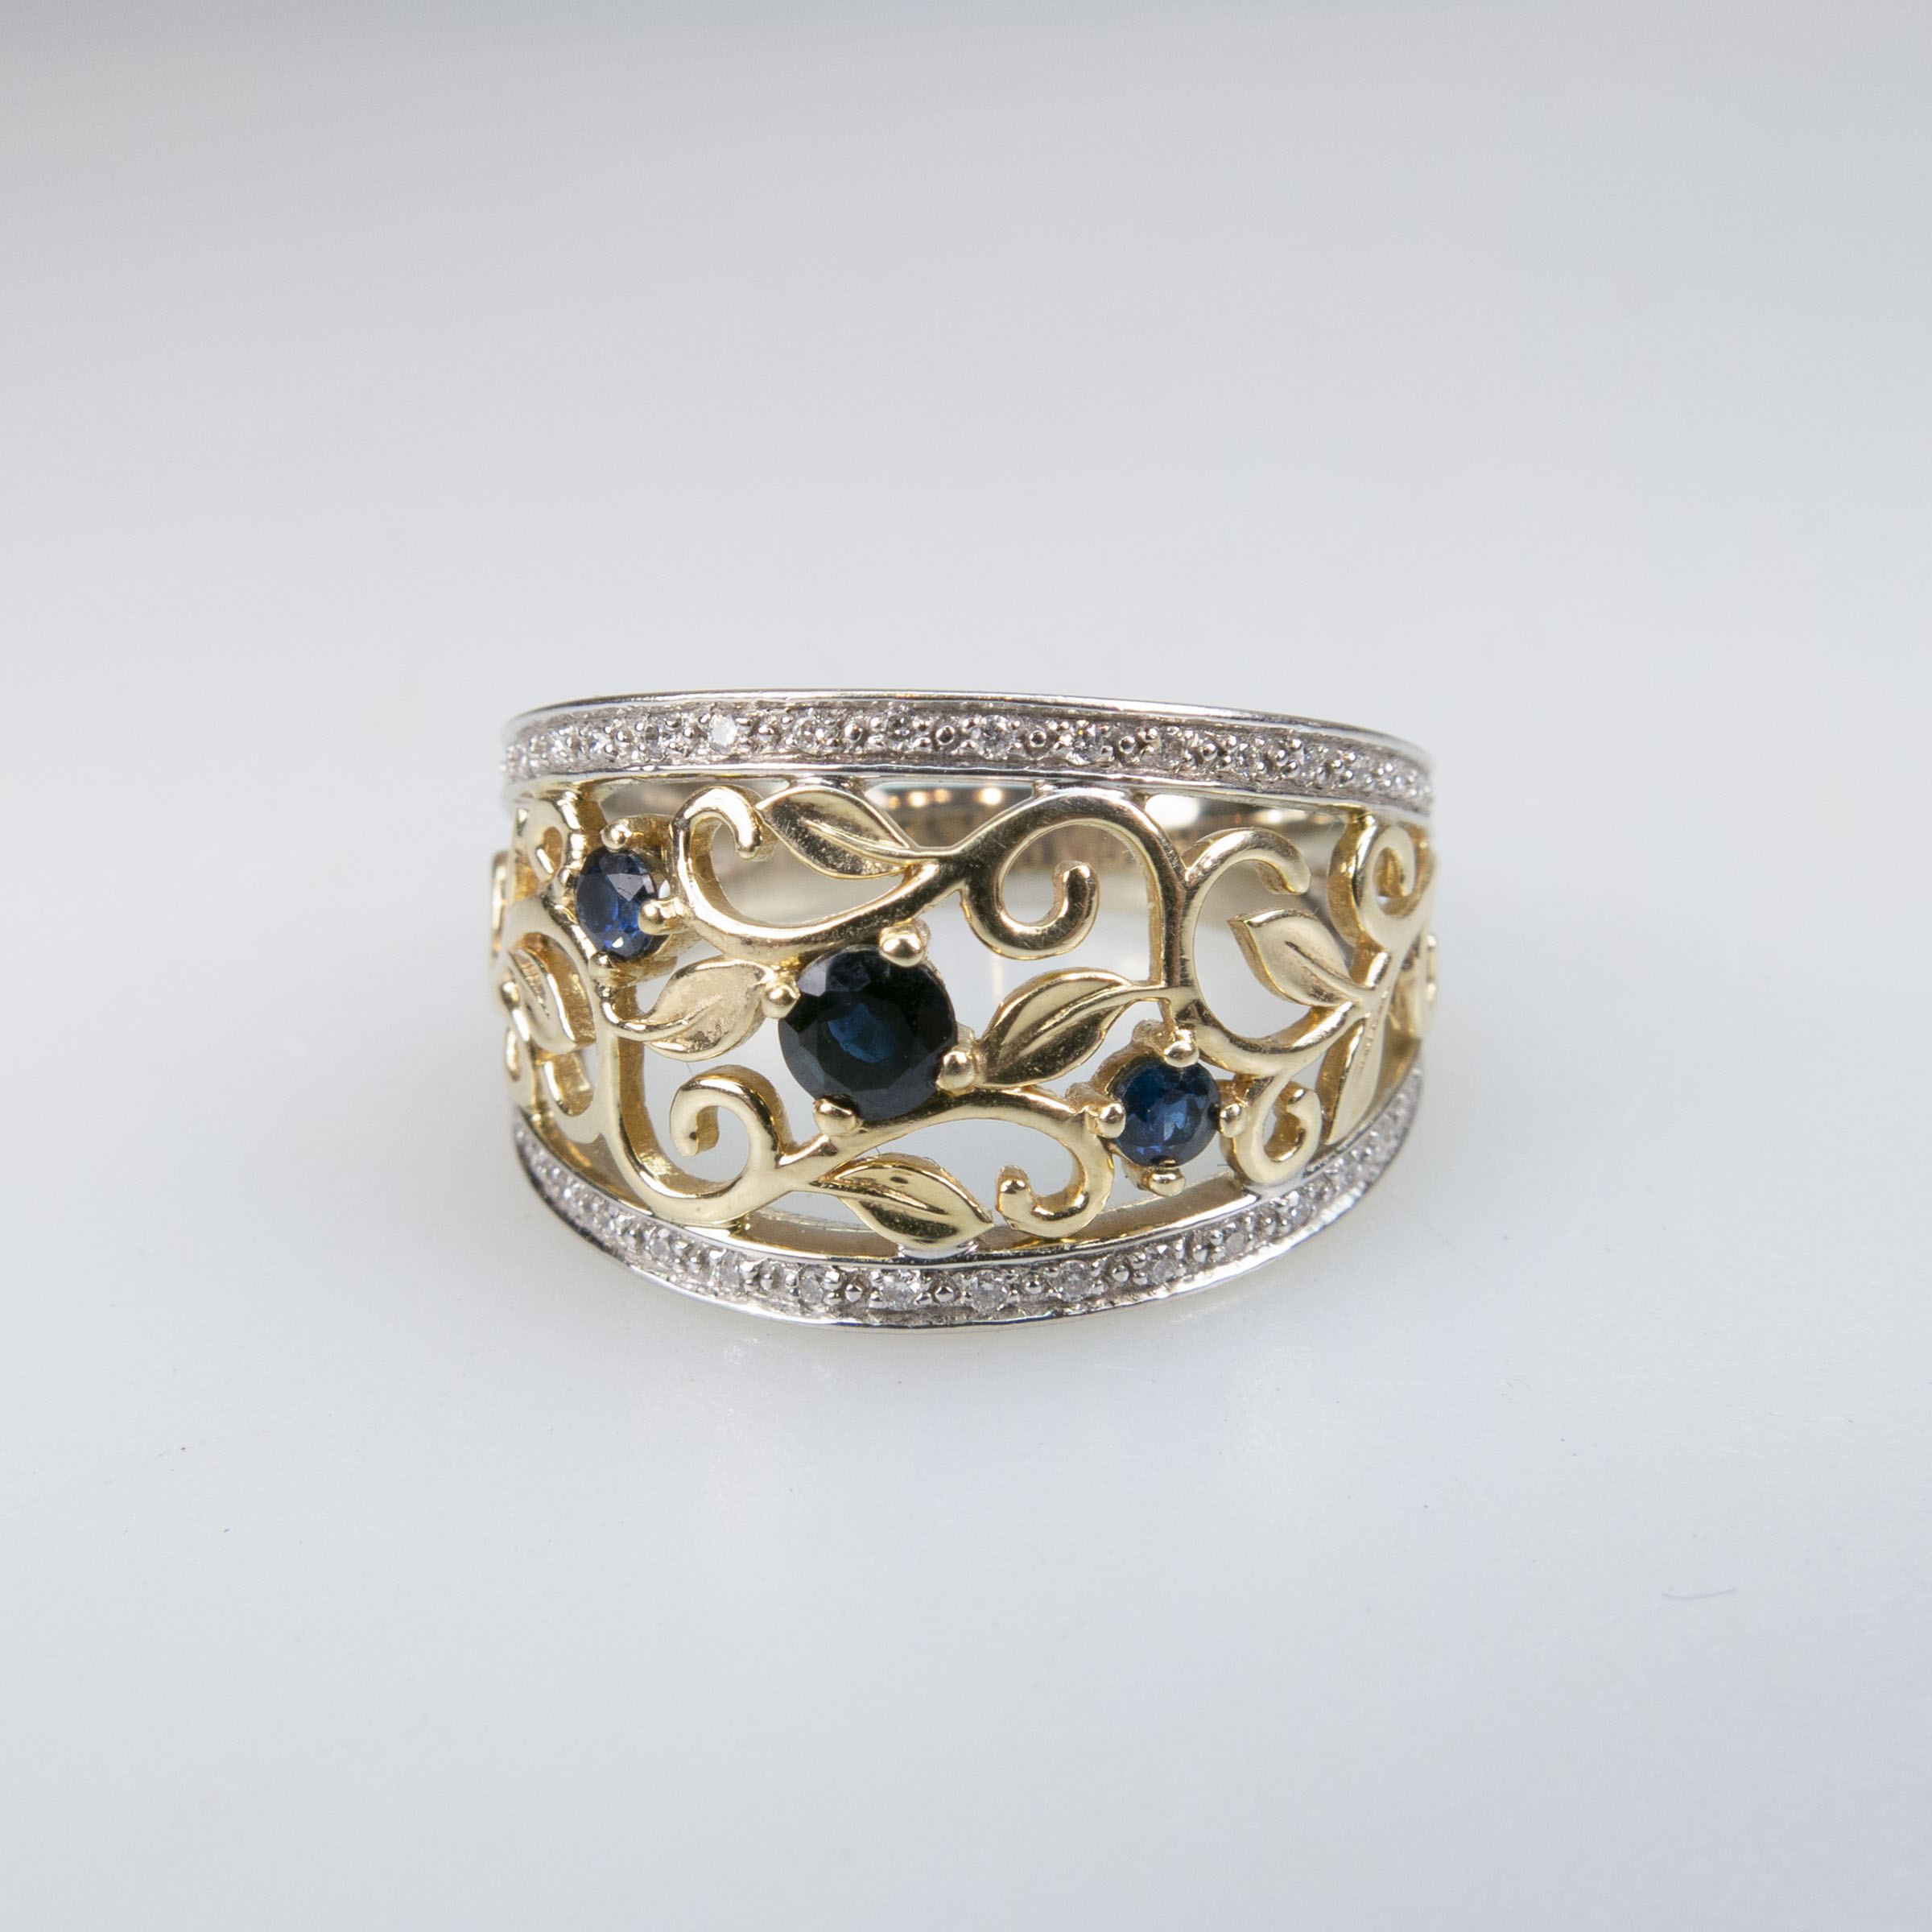 10k Yellow And White Gold Filigree Ring